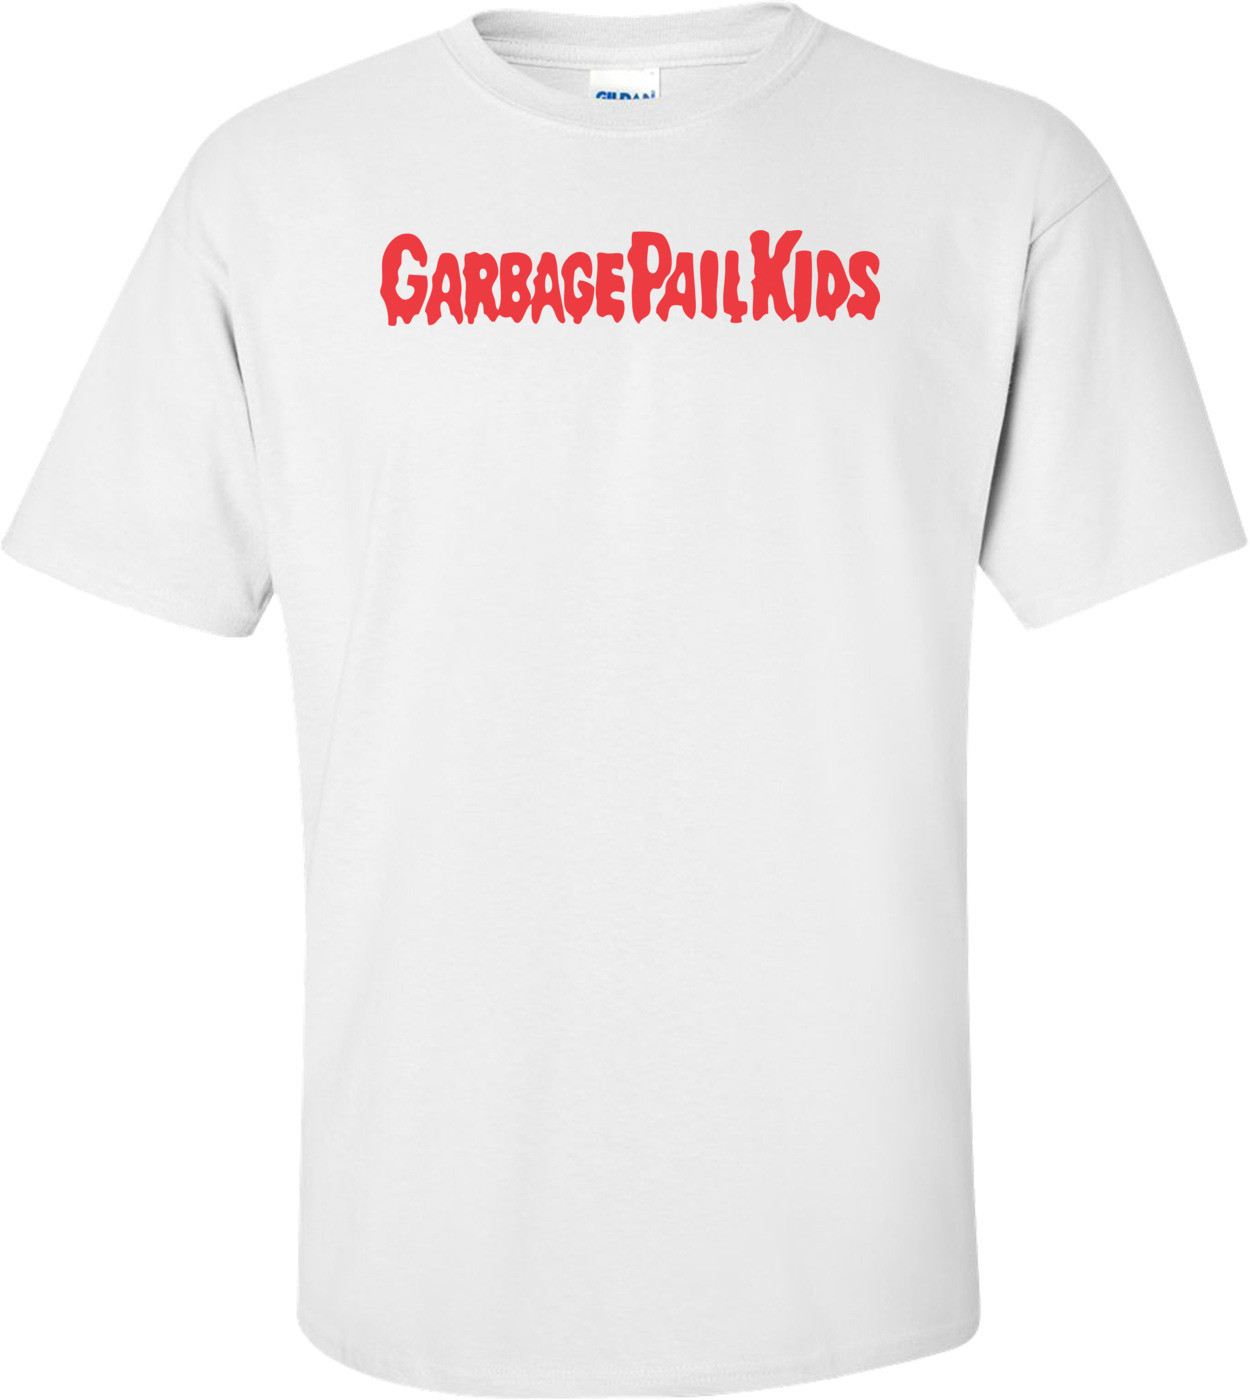 Garbage Pail Kids T-shirt